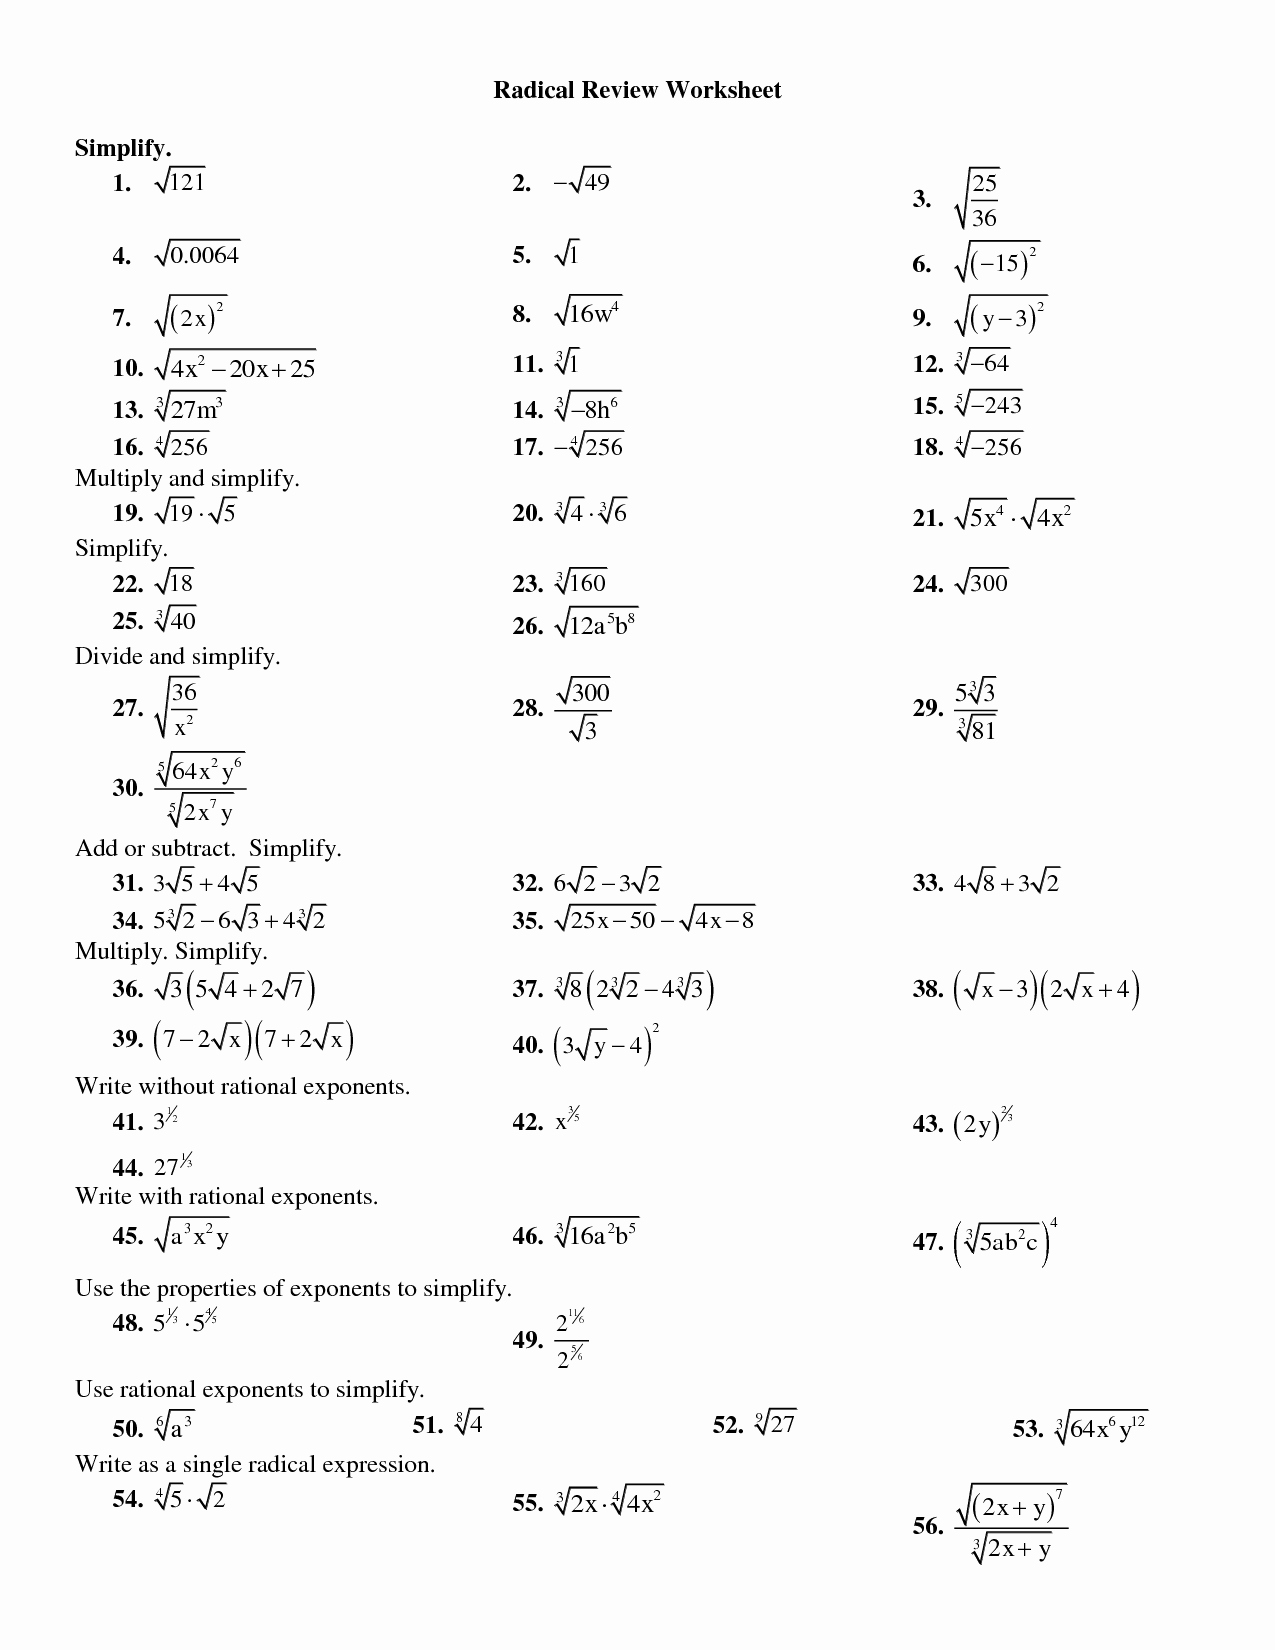 Dividing Radical Expressions Worksheet Elegant 19 Best Of Multiplying and Dividing Radicals